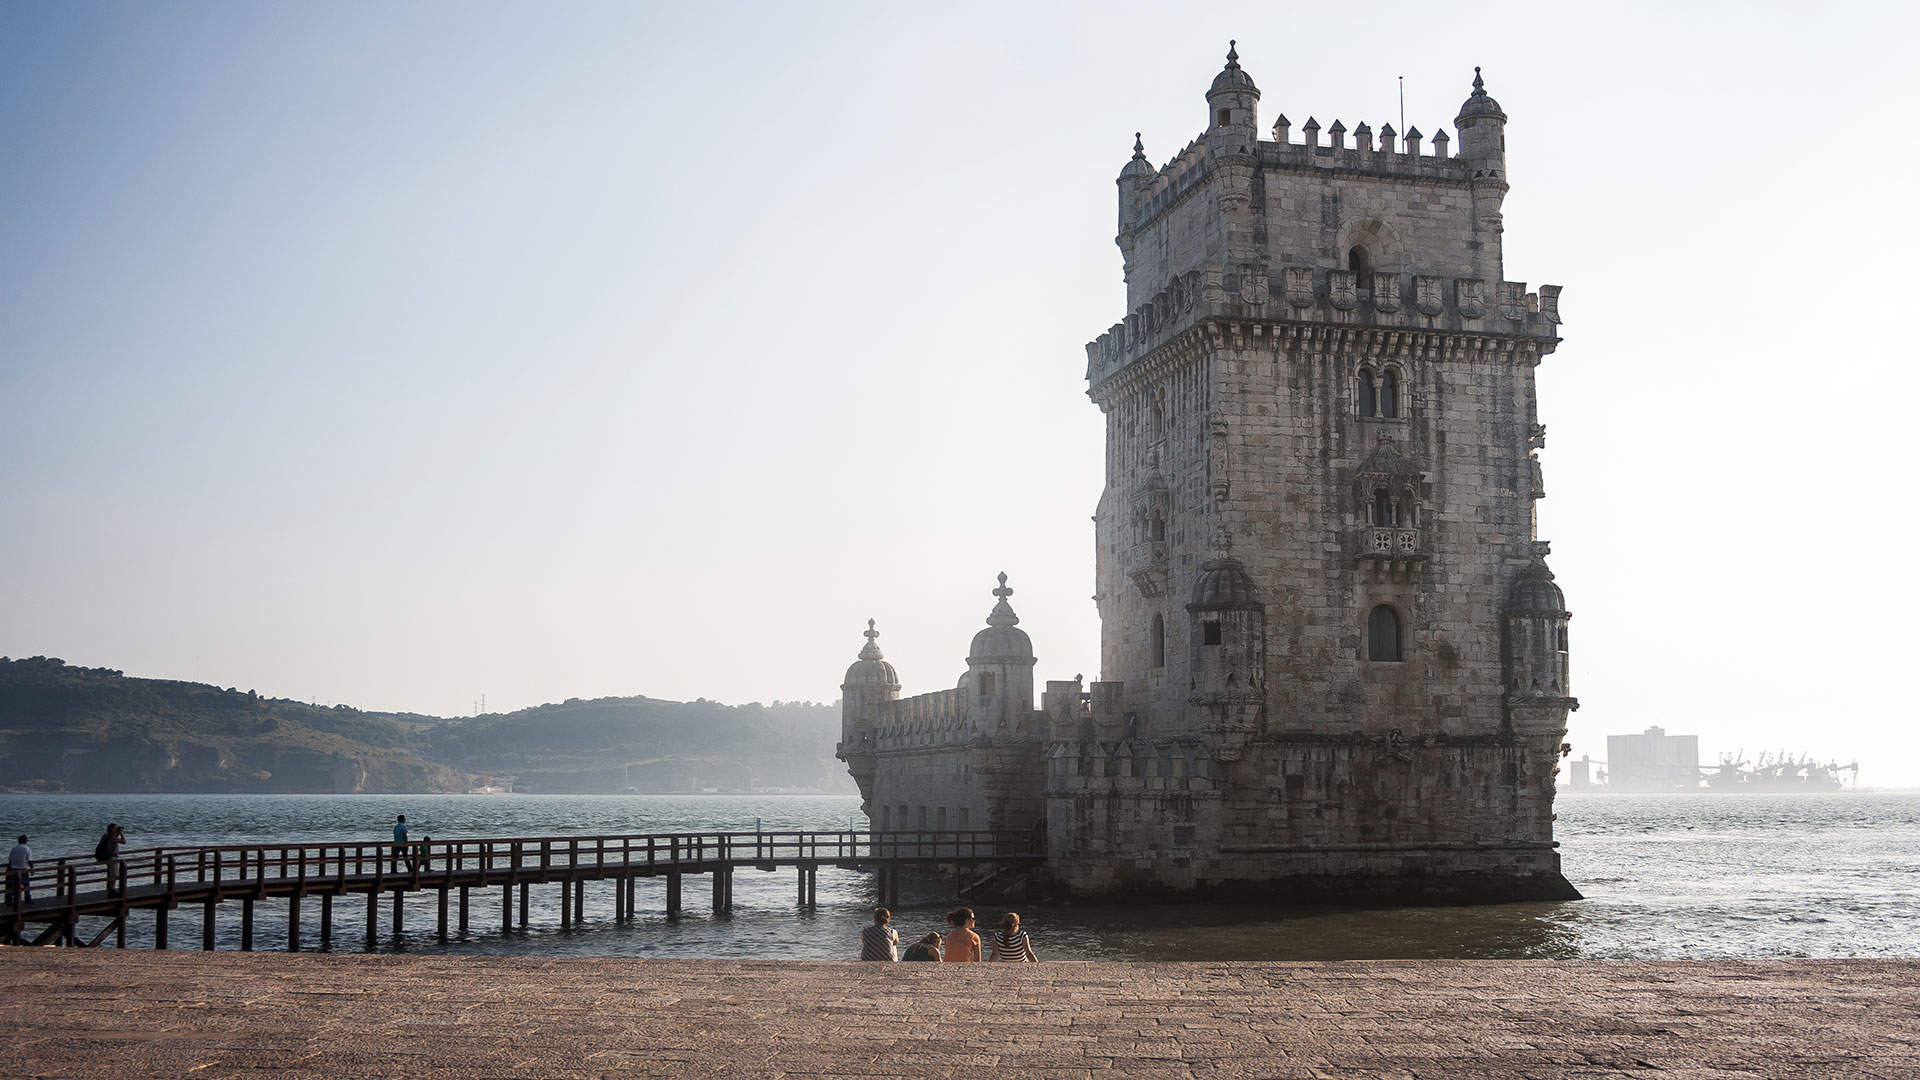 Torre de Belem in Lisbon at sunset